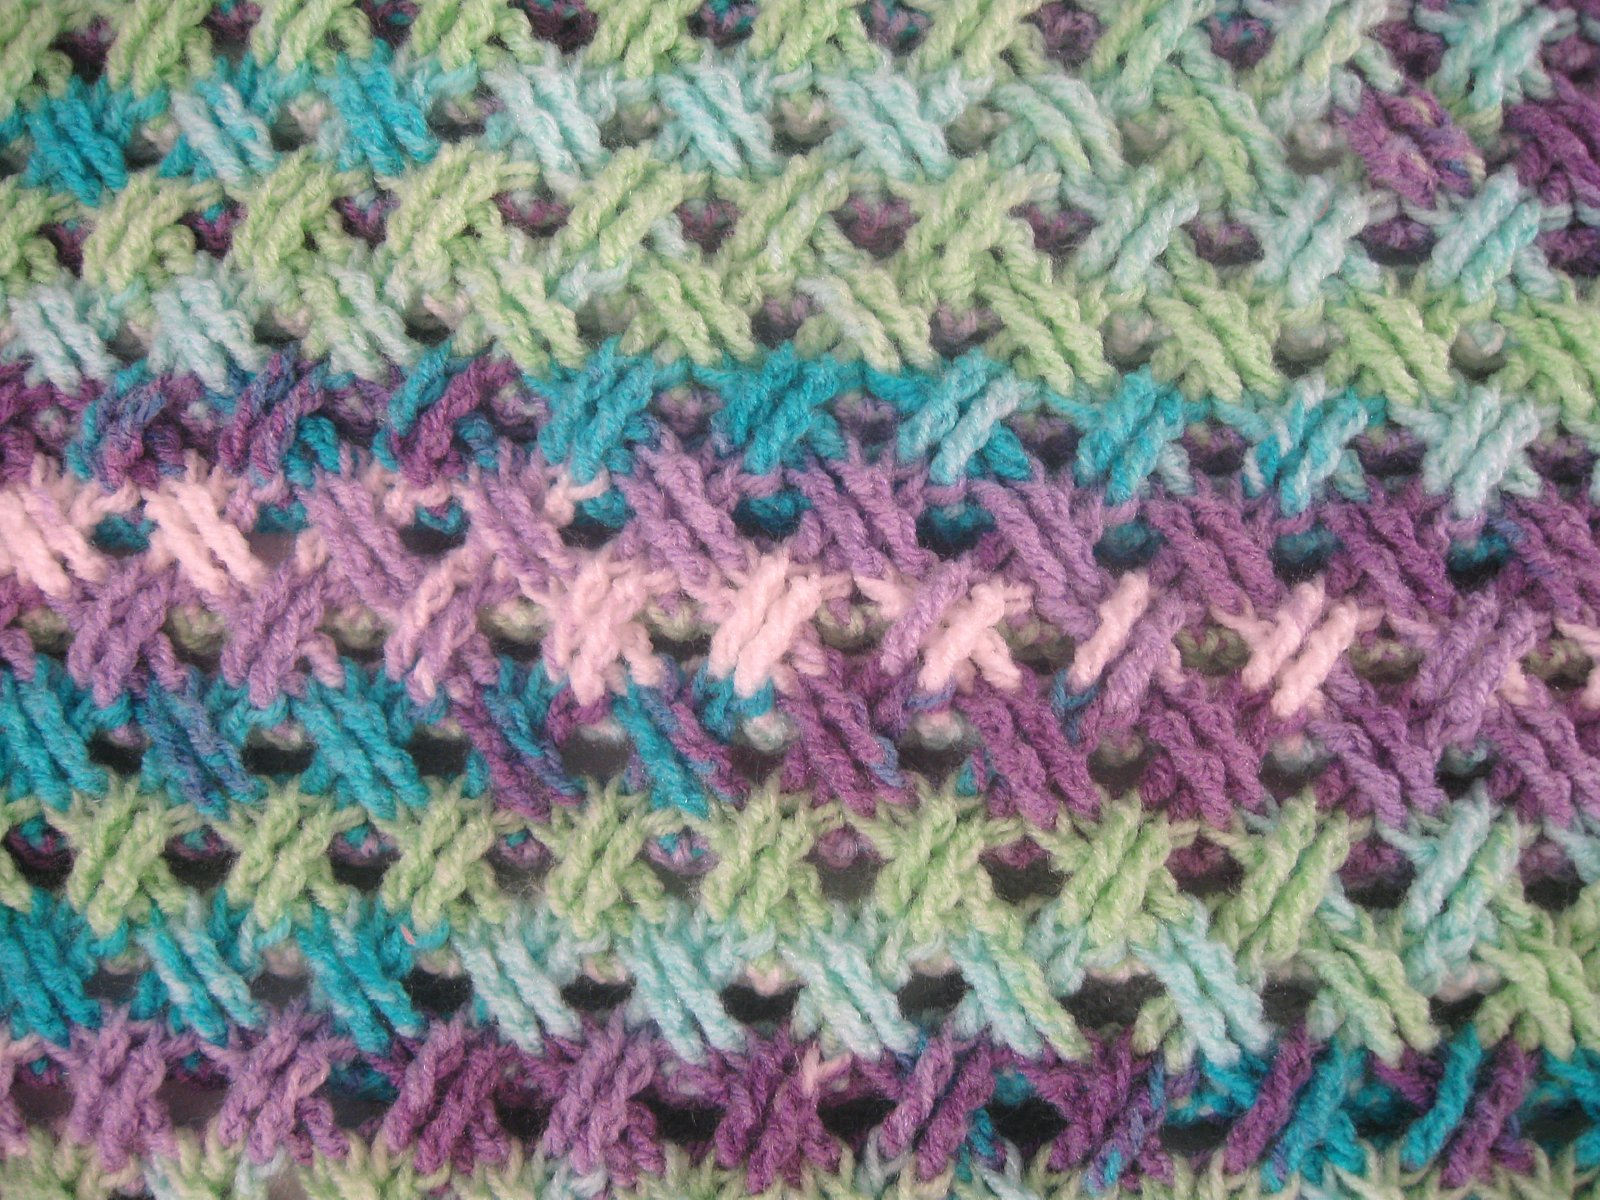 Crocheting Stitches : ... /2014/10/Interweave-Cable-Stitch-Shot-of-stitch-Web-display.jpg-image